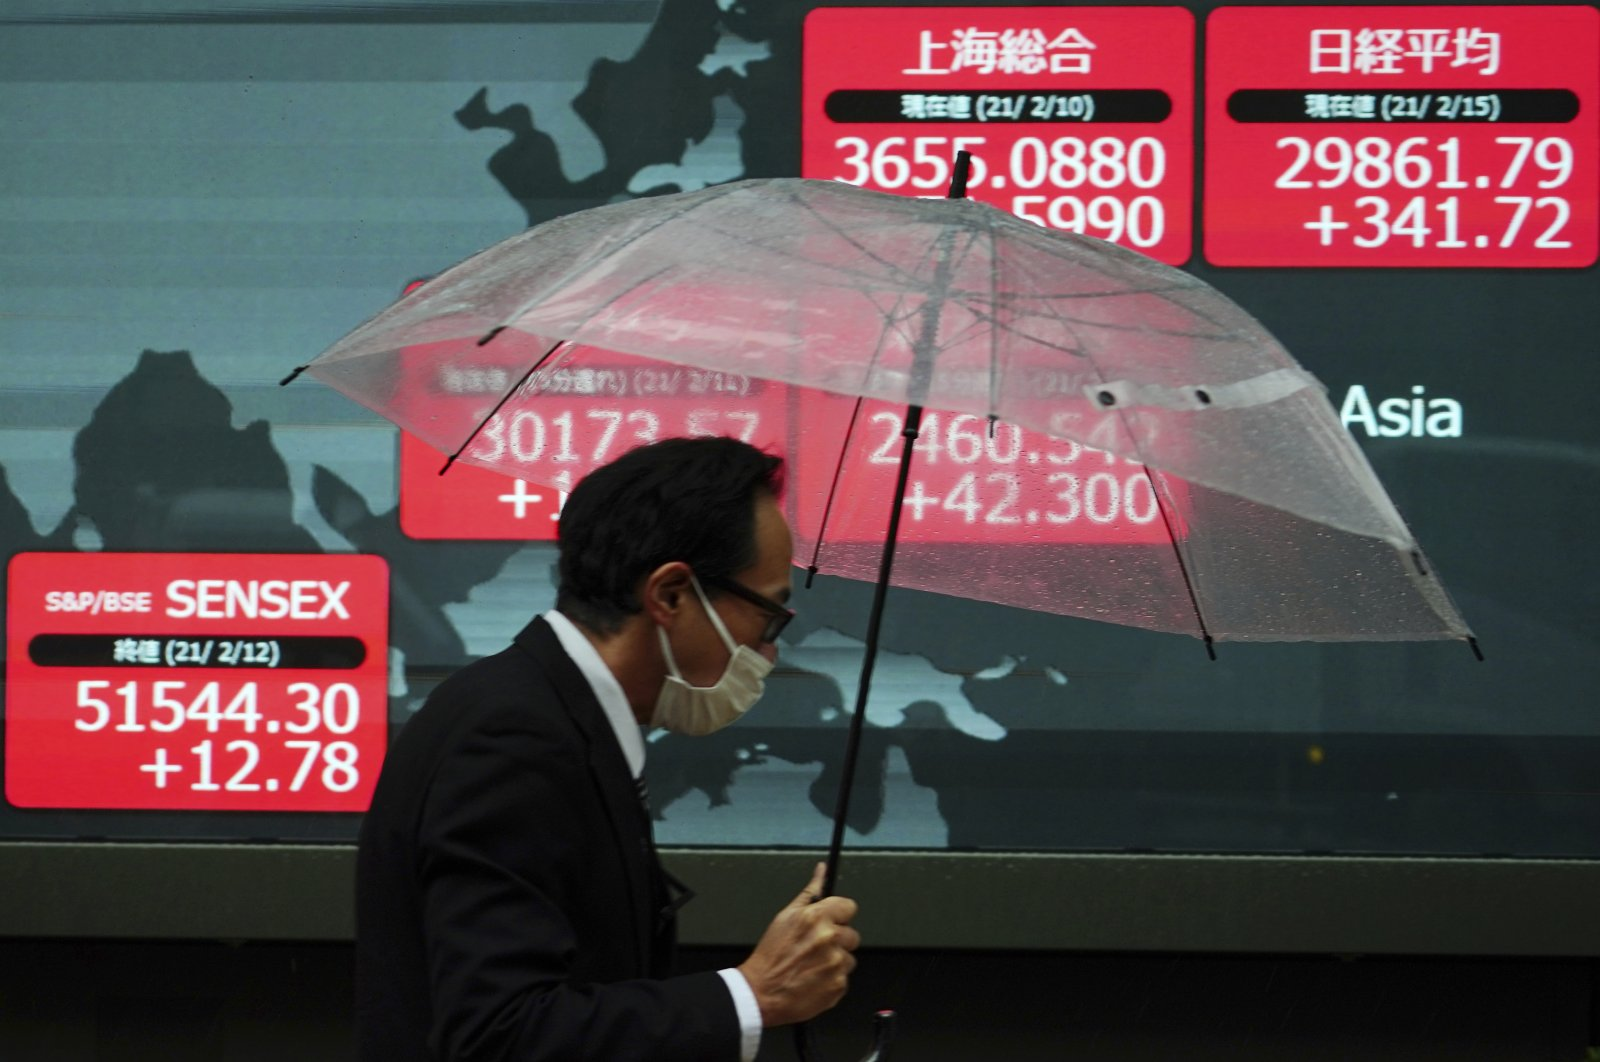 A man wearing a protective face mask to help curb the spread of the coronavirus walks in the rain past an electronic stock board showing Japan's Nikkei 225 and other Asian indexes at a securities firm Monday, Feb. 15, 2021. (AP Photo)